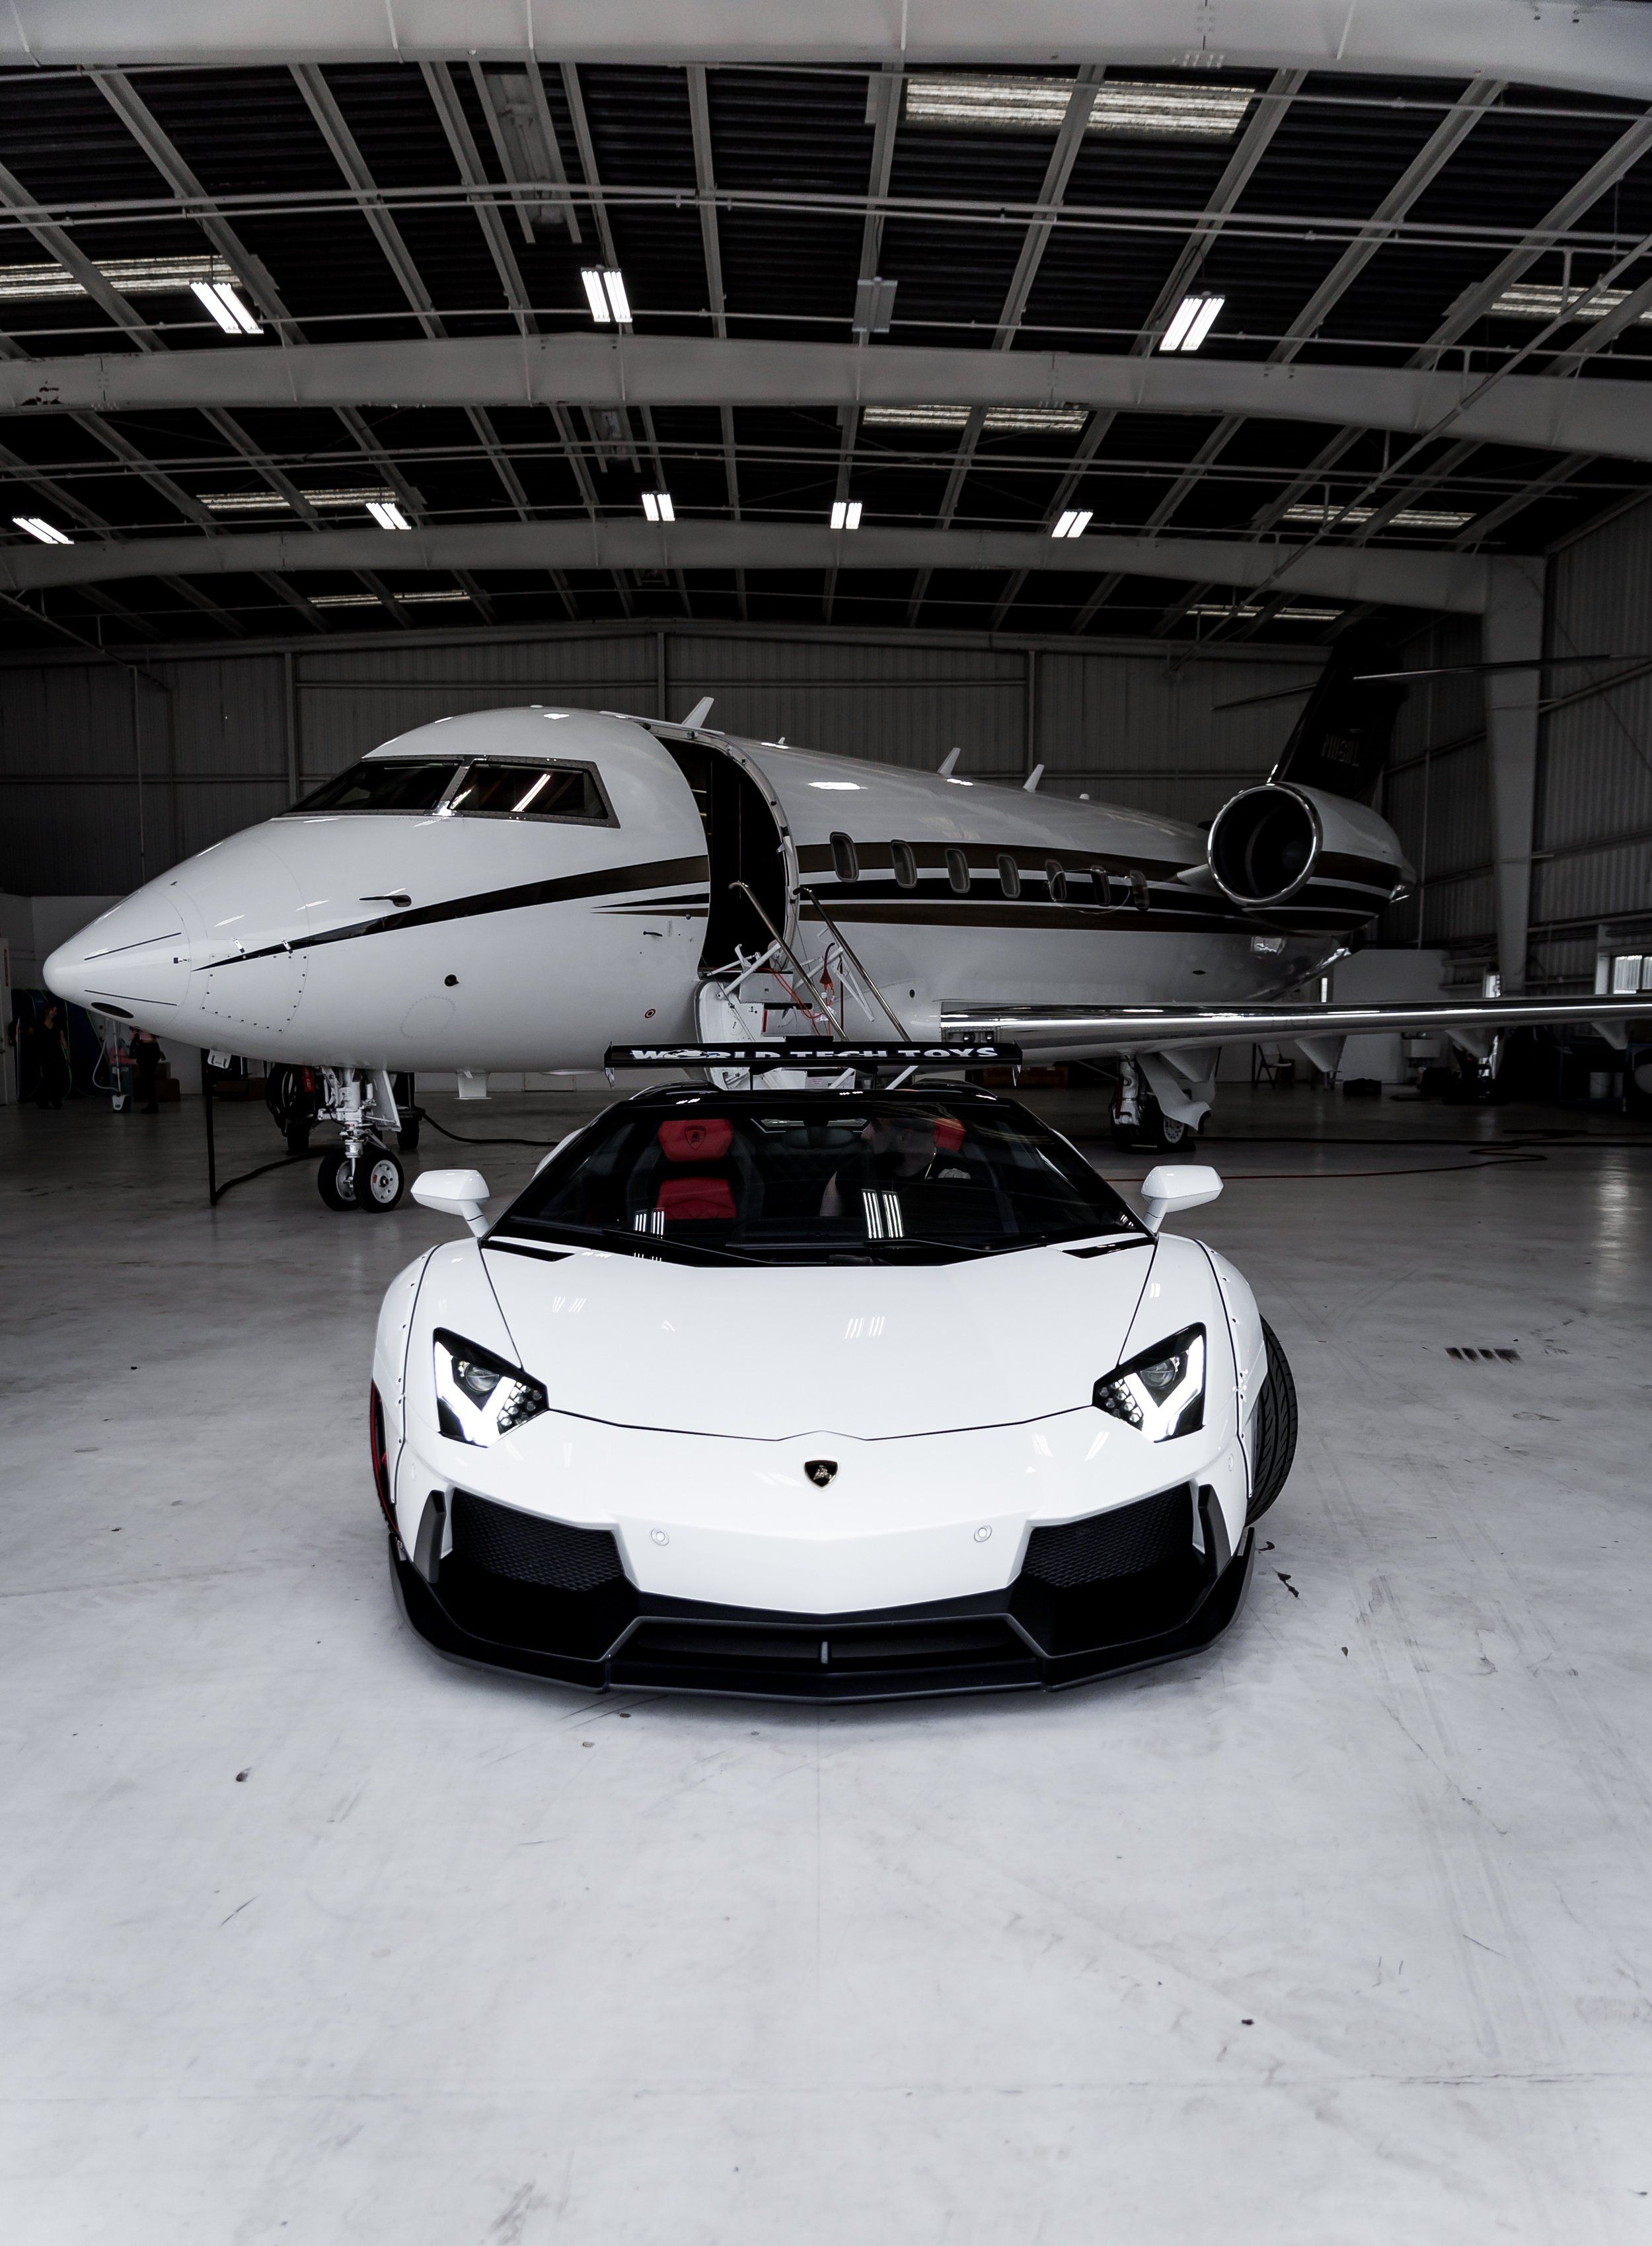 How To Launder Money 101 In 2020 White Lamborghini Luxury Private Jets Luxury Cars